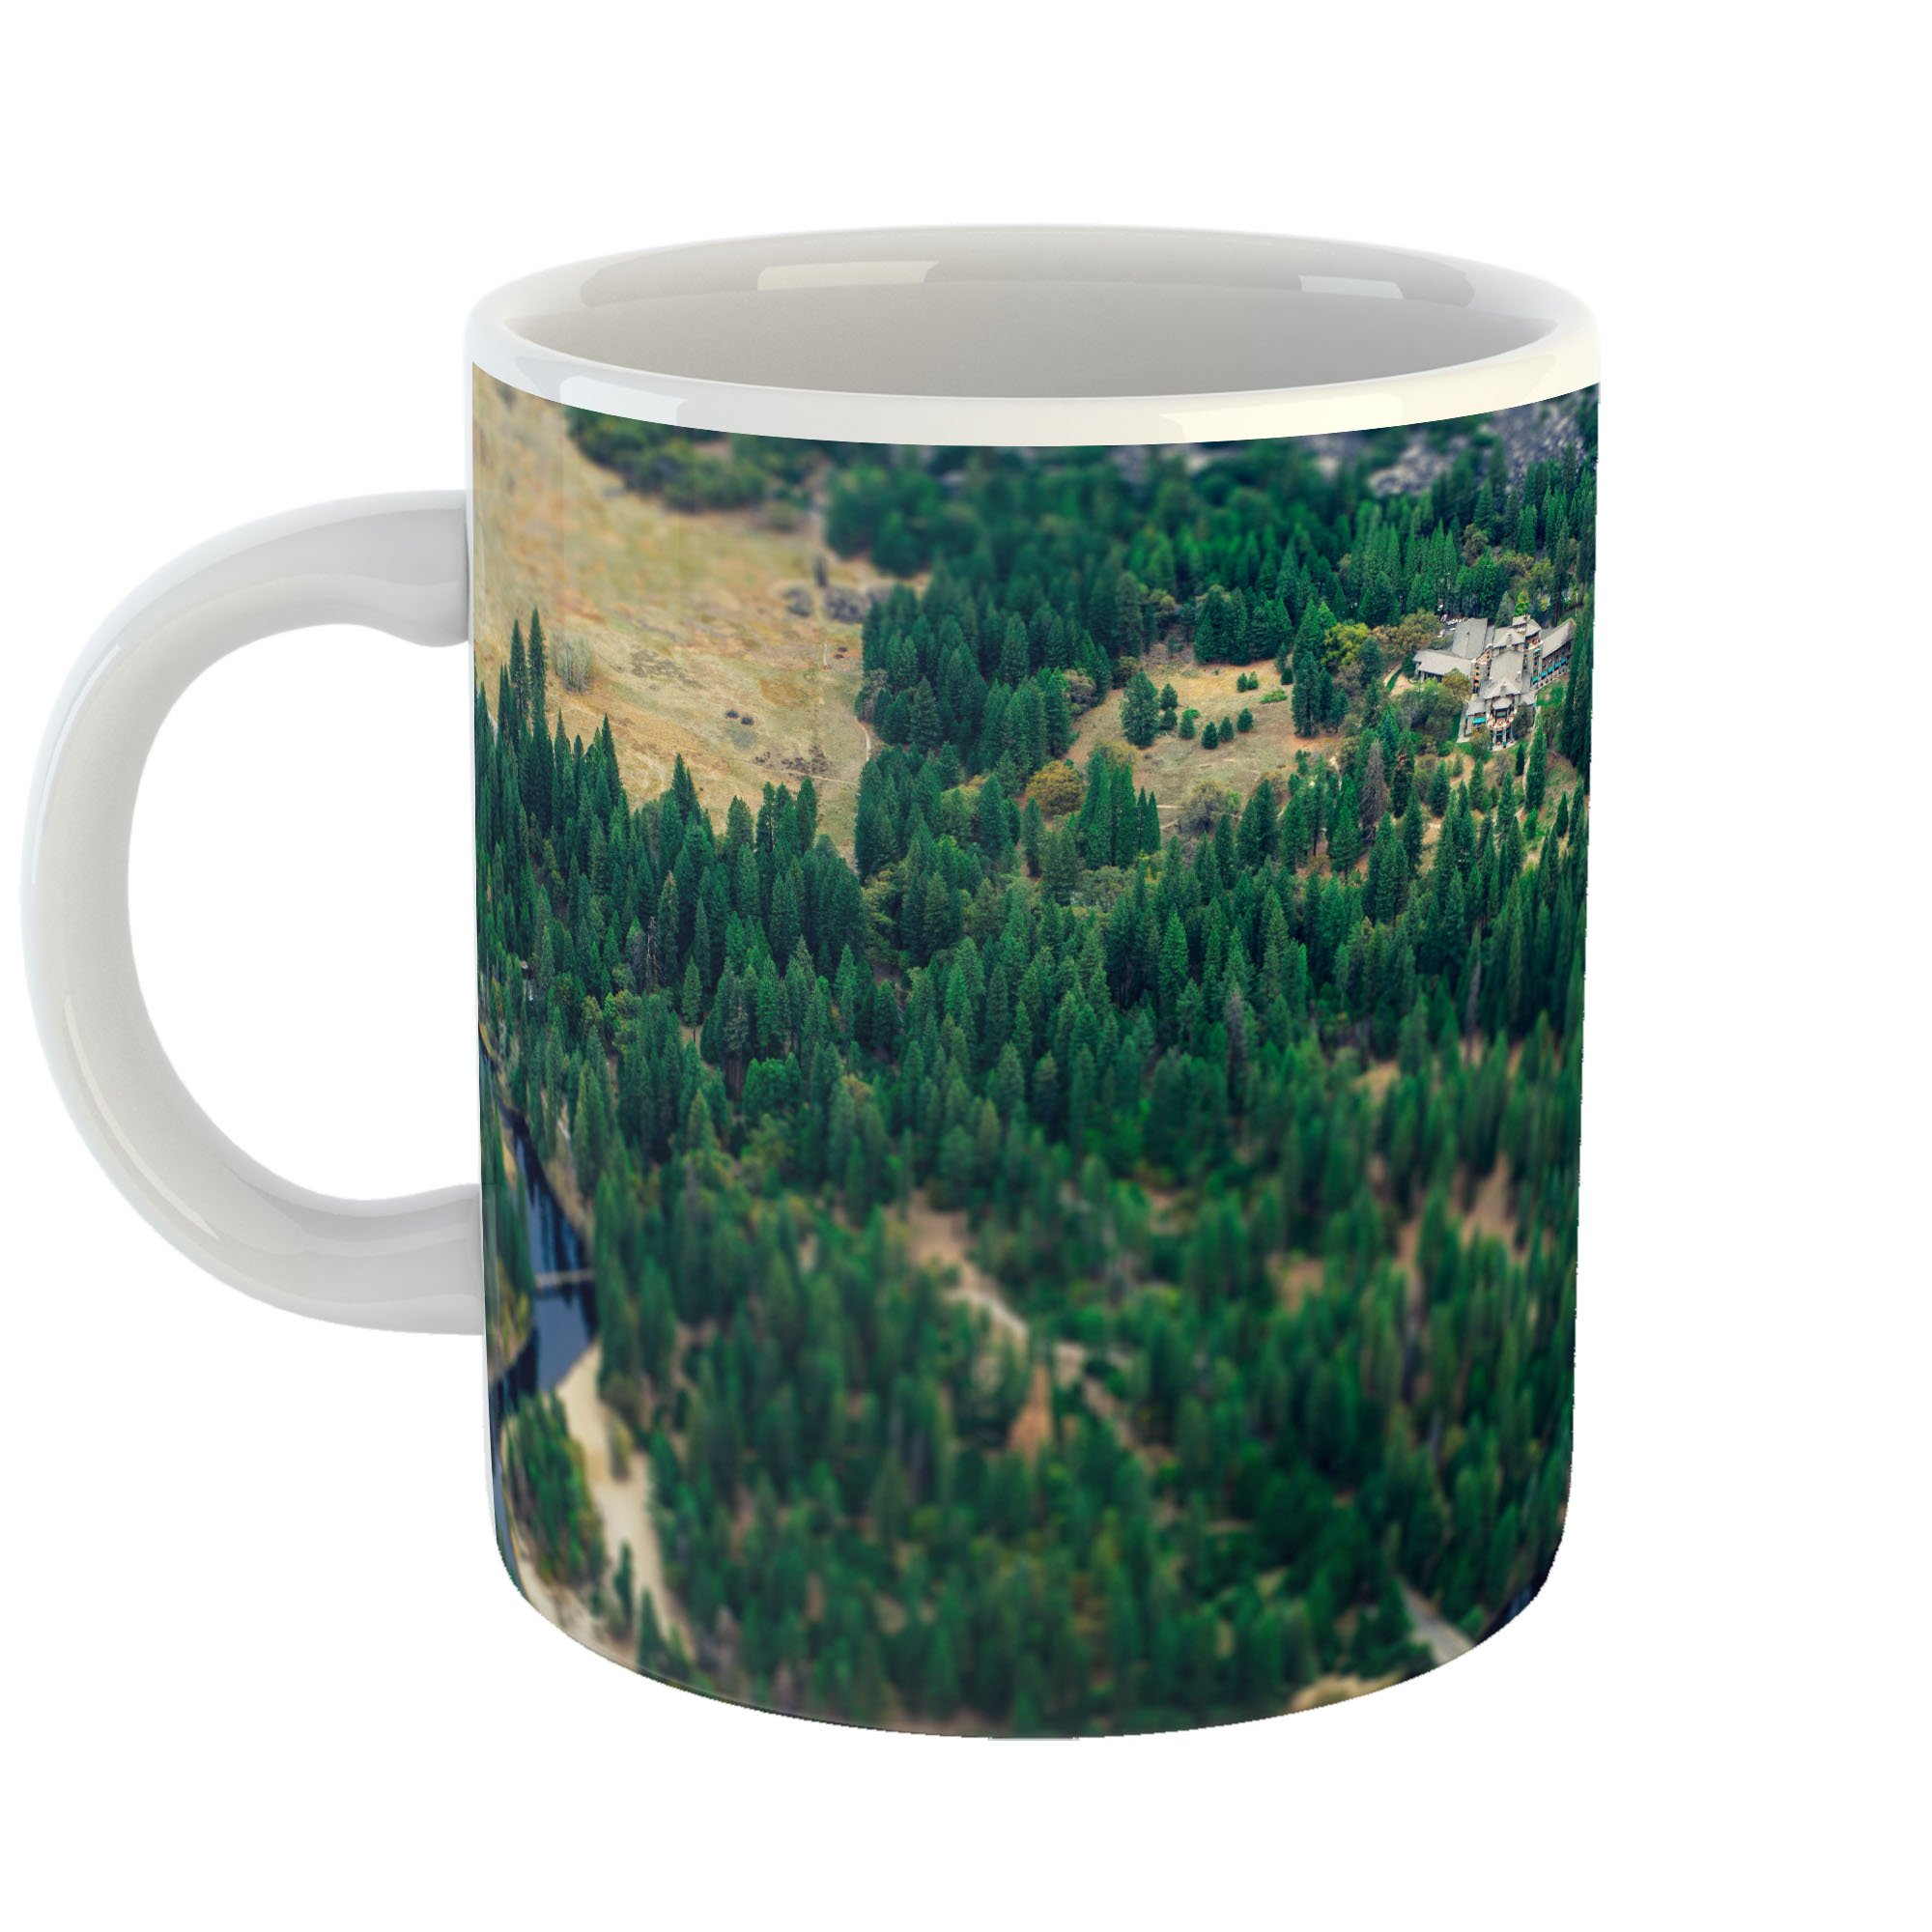 Westlake Art - Point Hotel - 11oz Coffee Cup Mug - Modern Picture Photography Artwork Home Office Birthday Gift - 11 Ounce (852A-D4AEA)